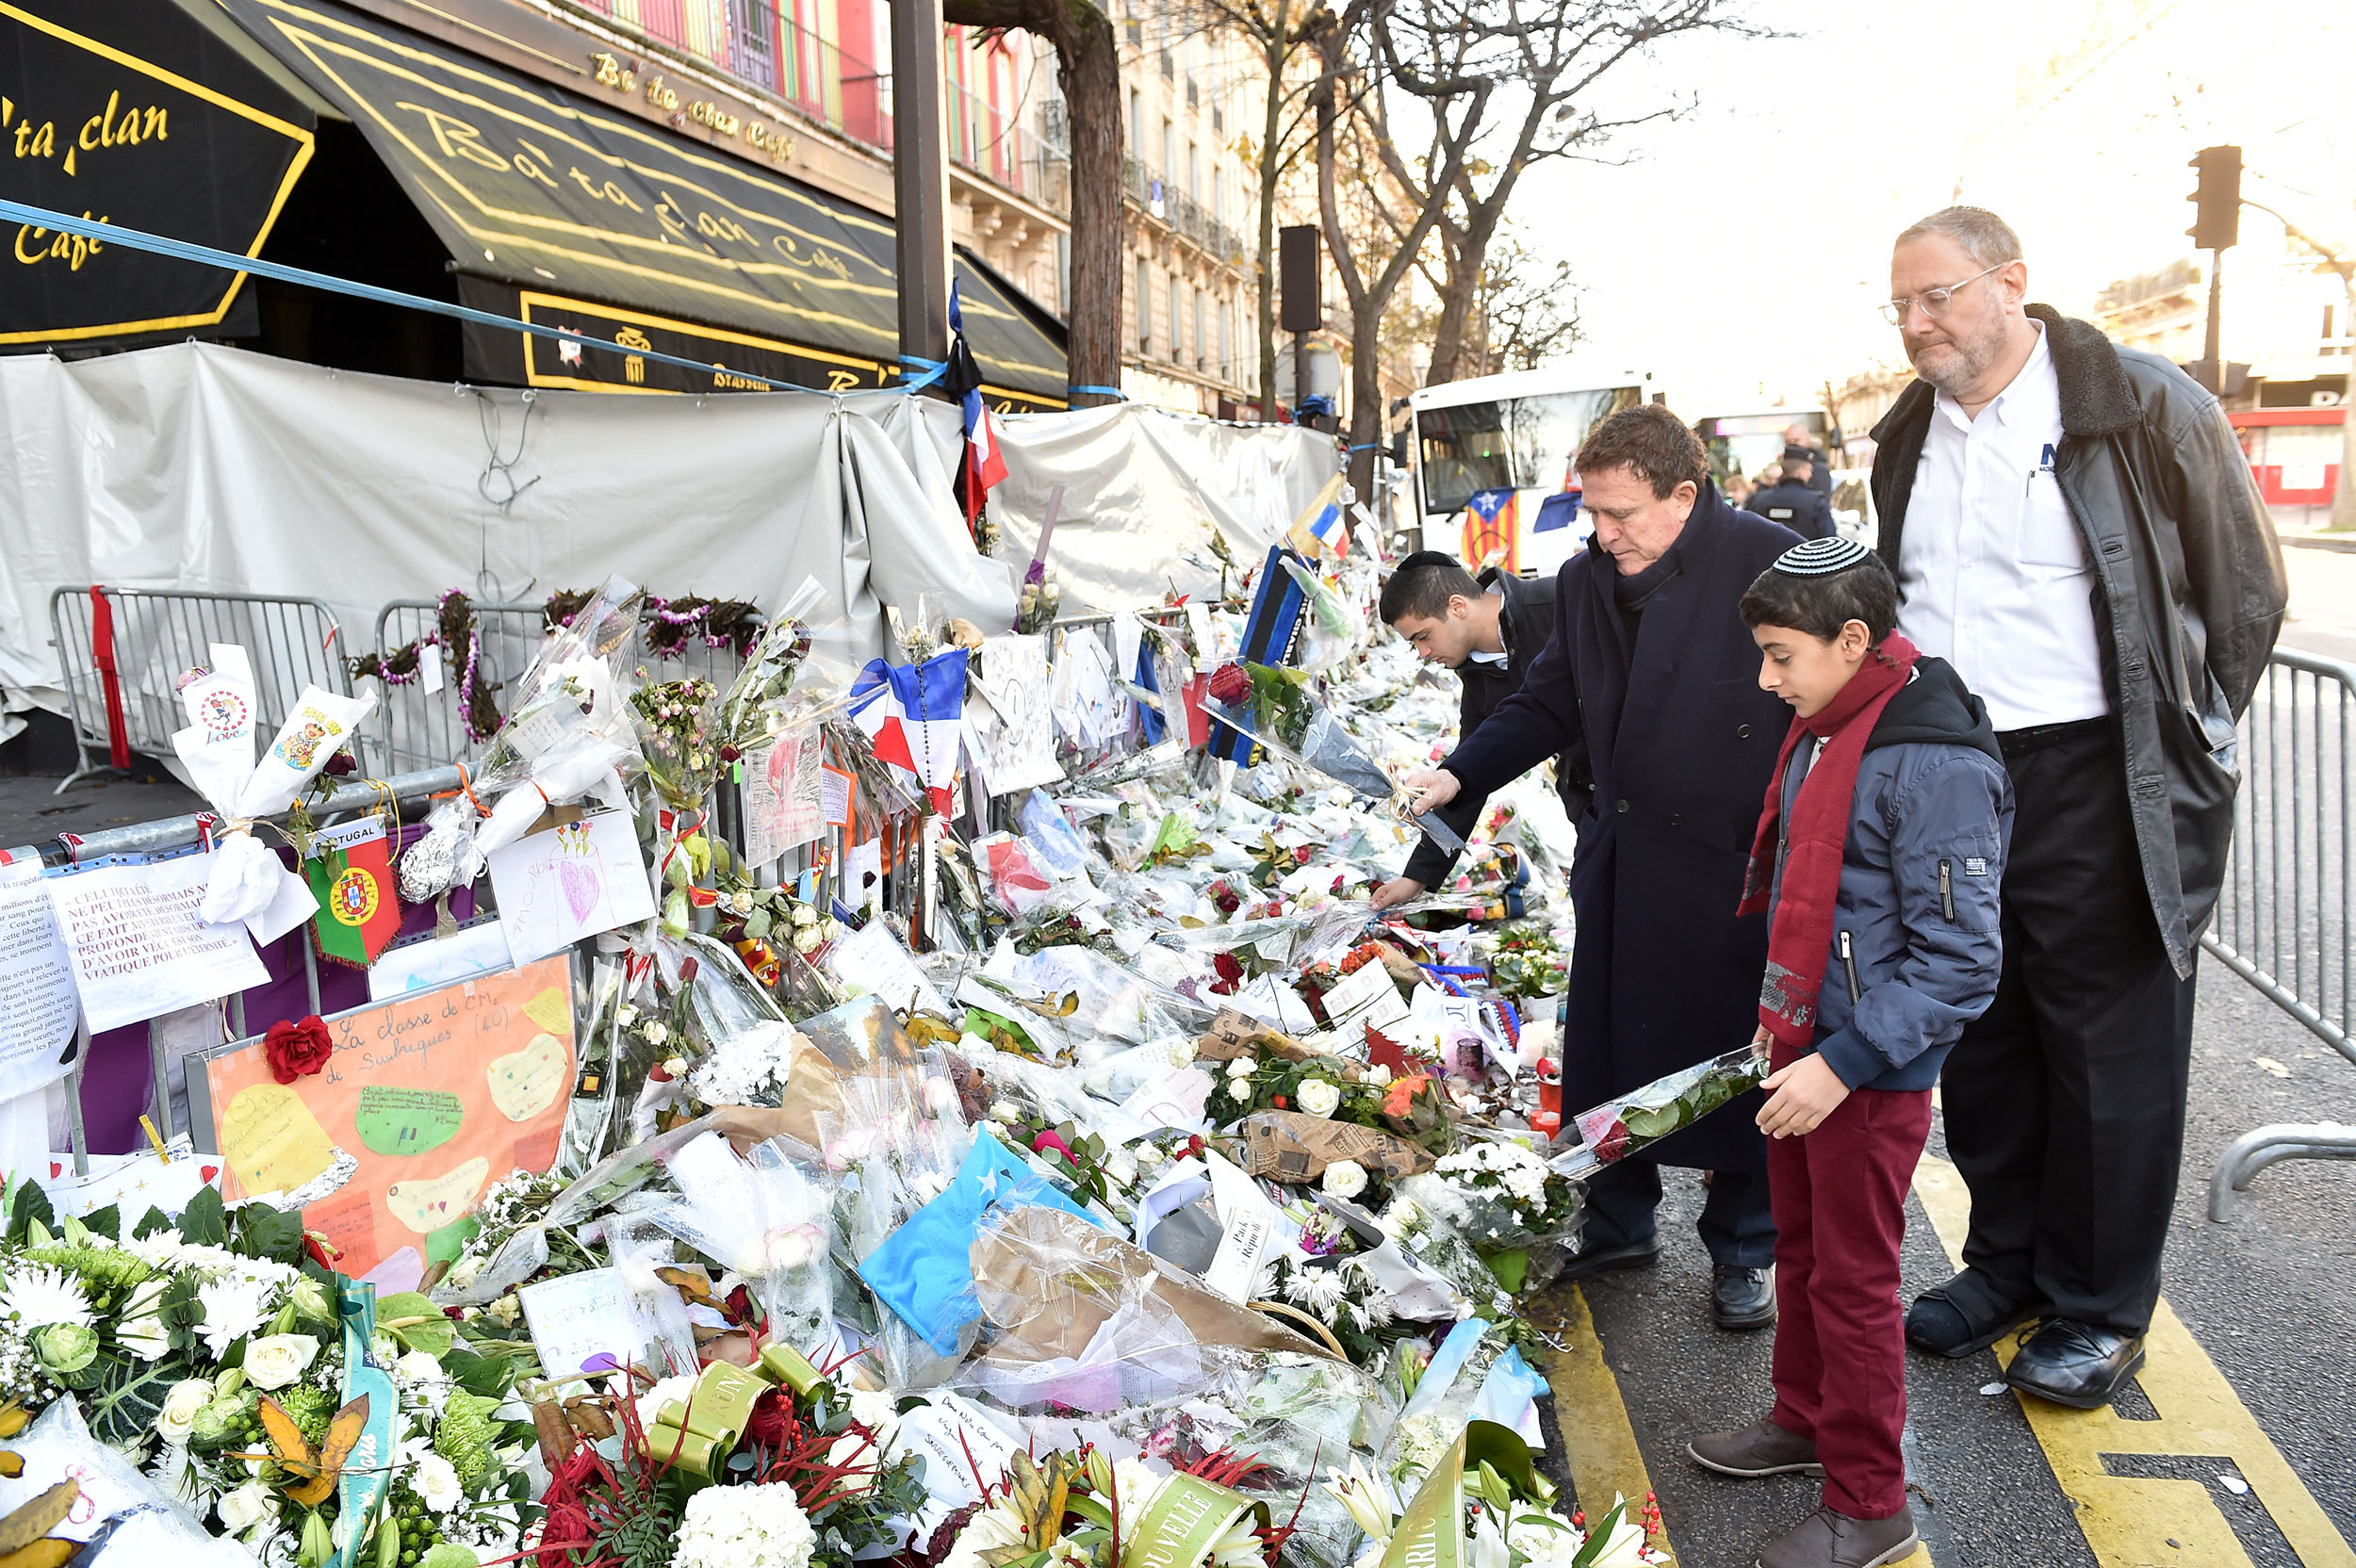 Nachum Segal looks on as Yehoram Gaon and Ouzia Tzadok lay flowers outside the Bataclan theater in Paris, site of one of six coordinated Islamist terror attacks last month. Photo by Israel Bardugo.